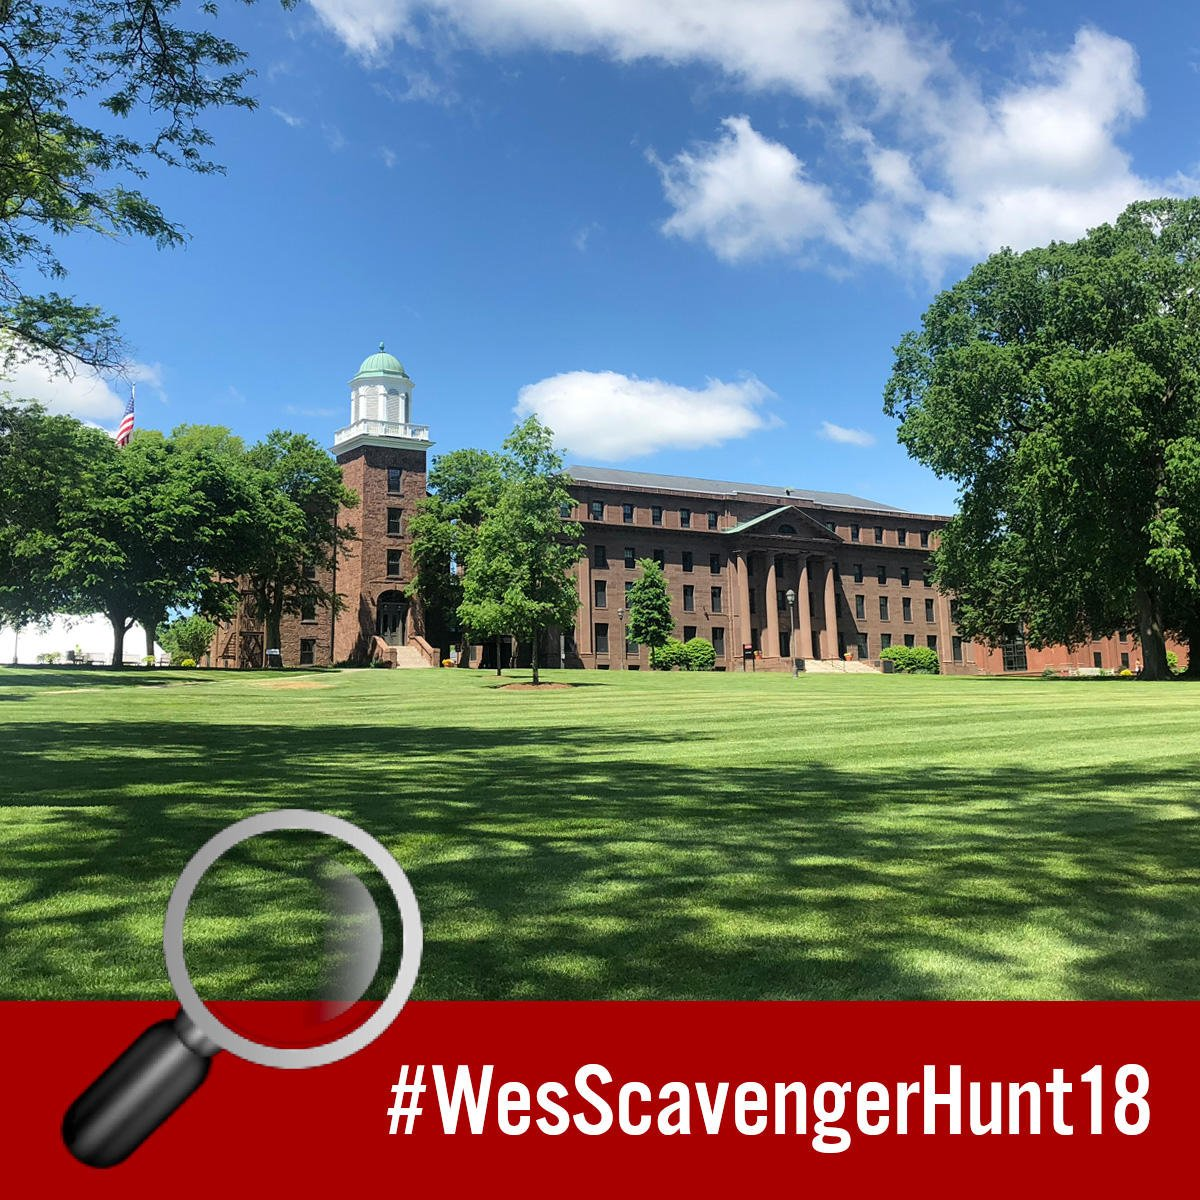 test Twitter Media - 🔍 Clue 9: Take a photo outside the home to the ultimate brunch spot and the best edible cookie dough. 🍪🍗 #WesScavengerHunt18 #NationalScavengerHuntDay    More clues: https://t.co/iwQIXnDb7K https://t.co/Aojggggmii